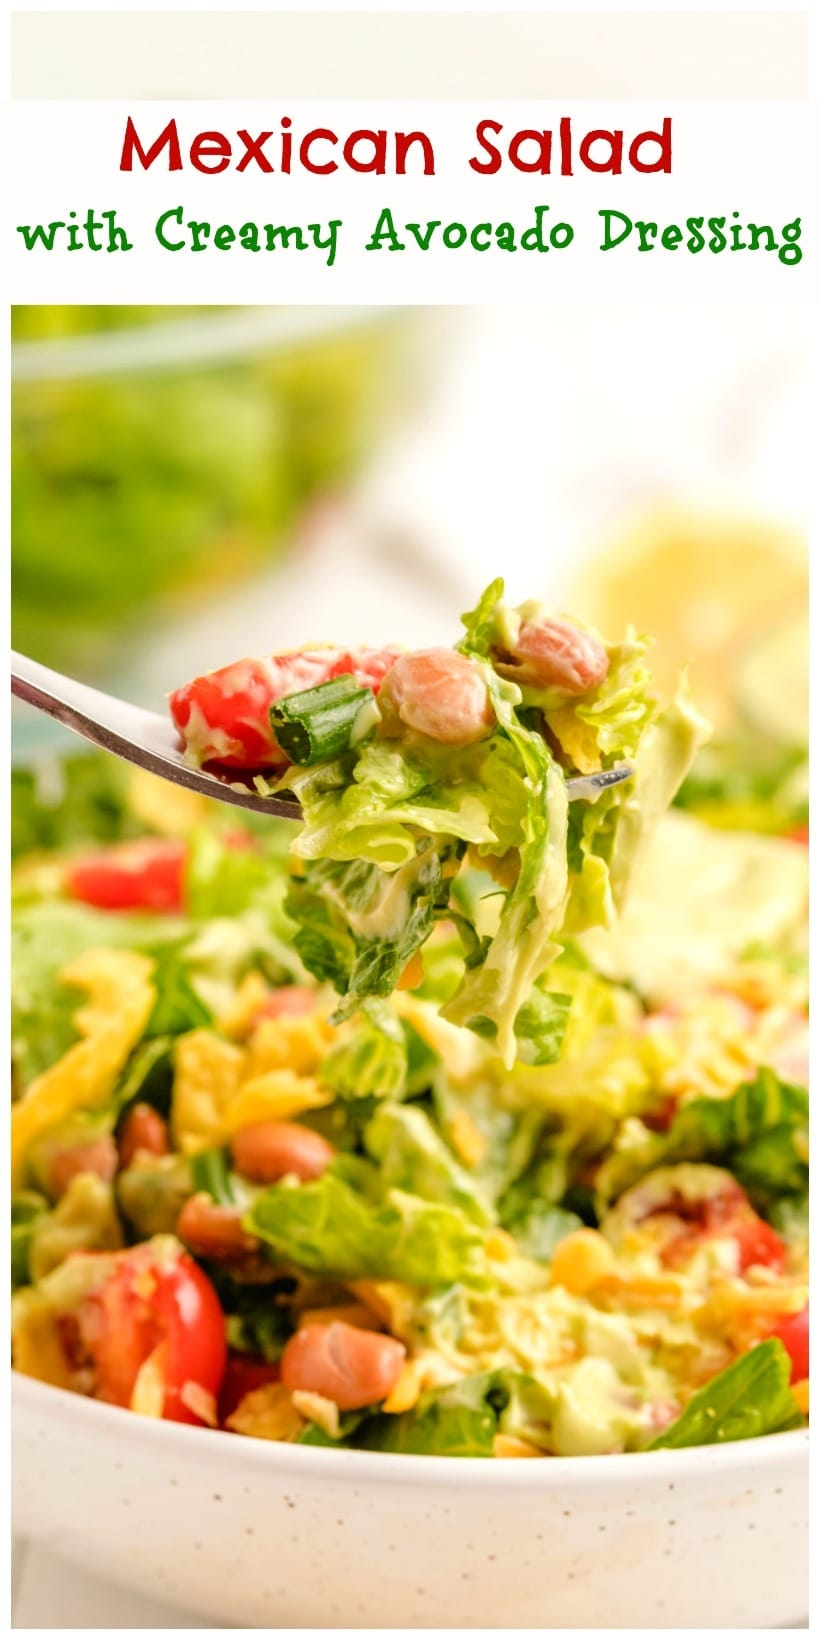 Mexican Salad with a Creamy Avocado Dressing is the perfect accompaniment to a heavy Mexican style meal. You can't beat the fresh flavors and colorful ingredients of this popular Mexican side dish.  via @cmpollak1